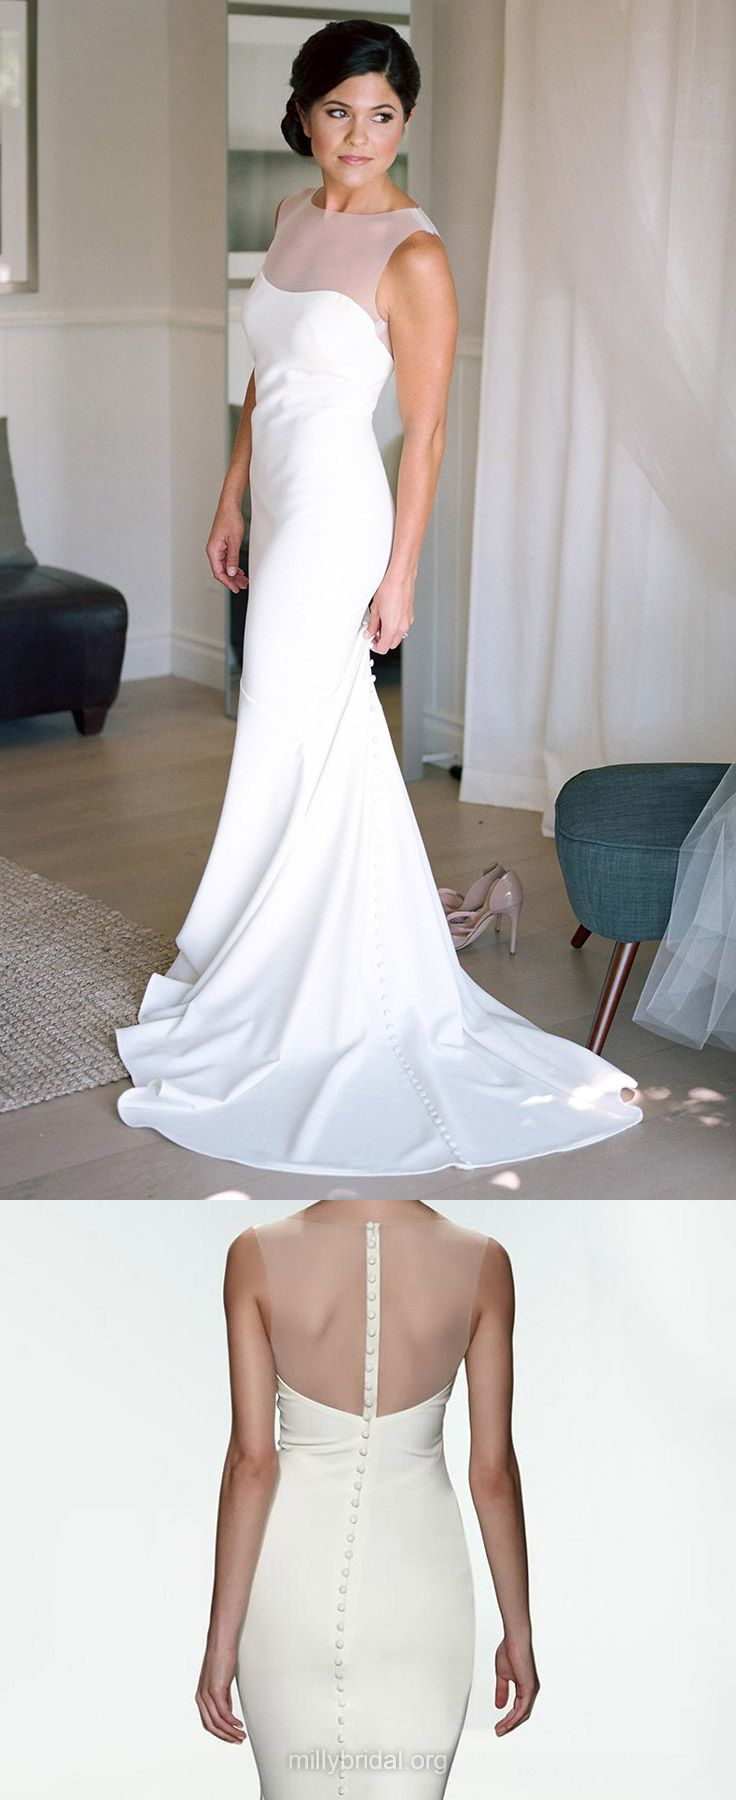 Simple Wedding Dresses Sheath/Column, Scoop Neck Bridal Dresses Tulle, Silk-like Satin Wedding Dress Ruffles